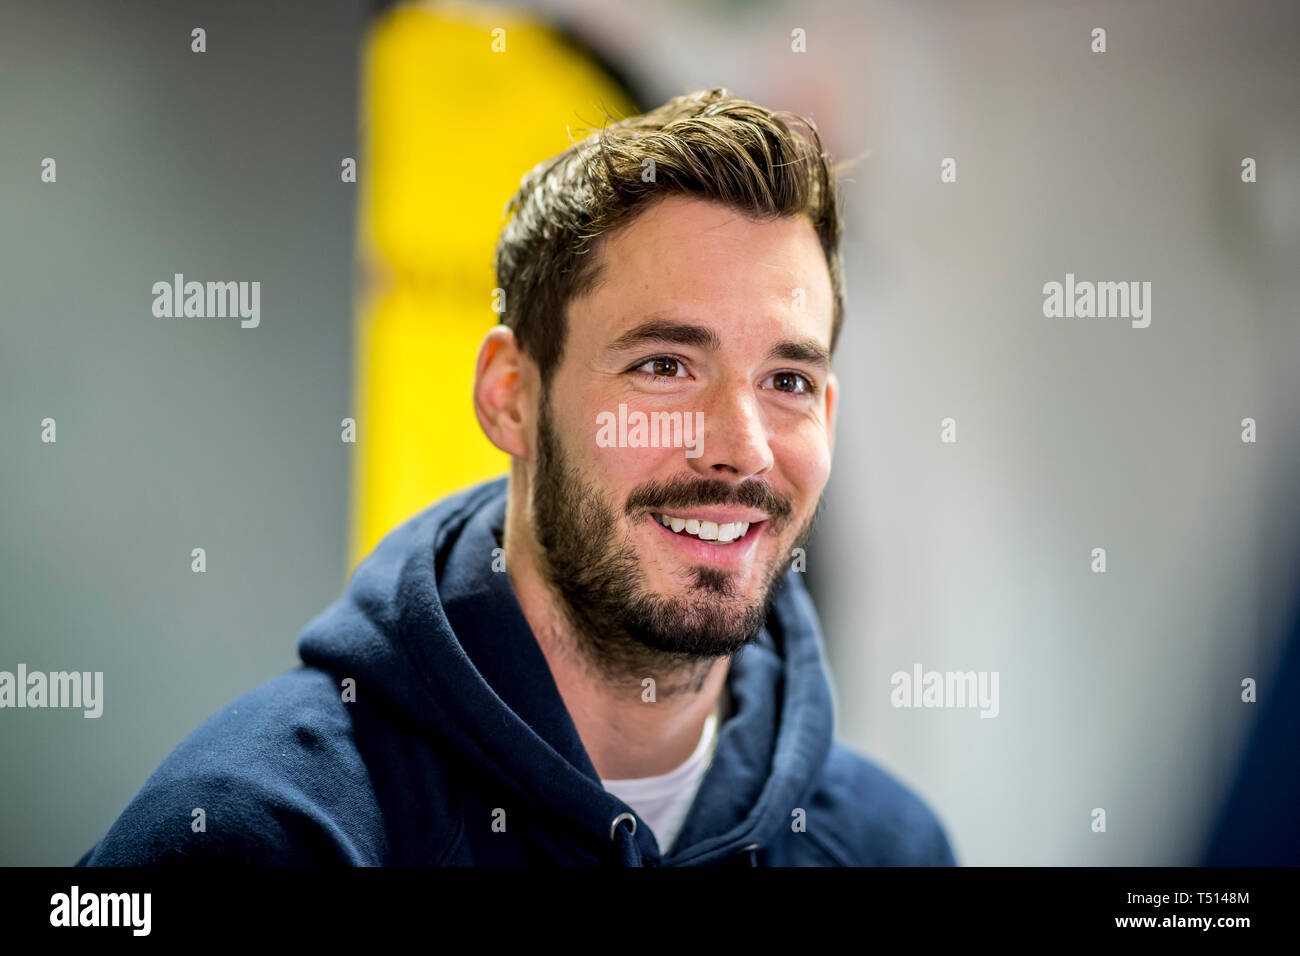 Fußball: 1. Bundesliga, Saison 2018/2019, Interview mit Dortmunds Roman Bürki am 04.03.2019 in Dortmund (Nordrhein-Westfalen) Stock Photo